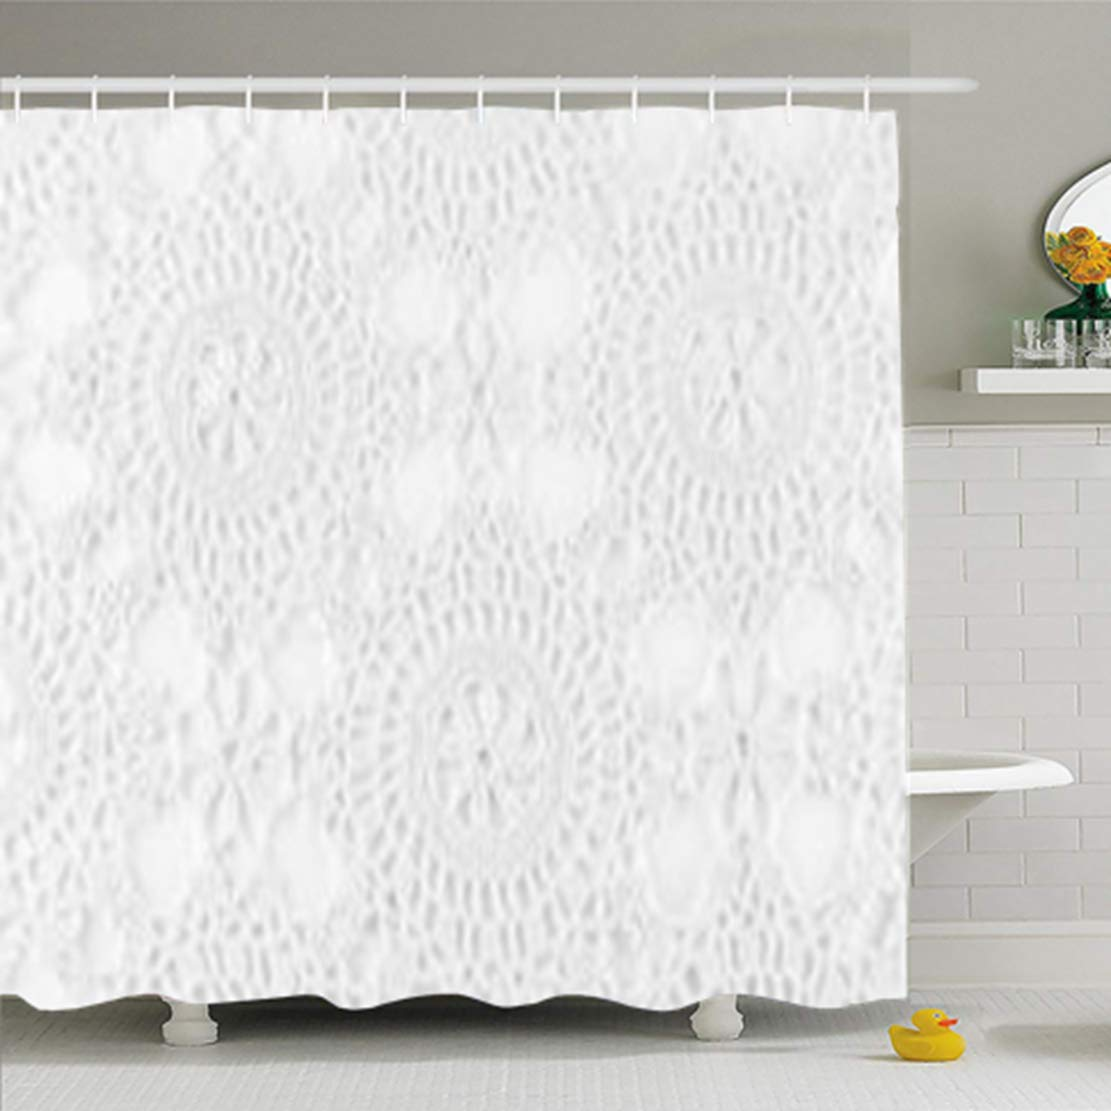 Amazoncom Artsdecor Shower Curtains 72 X 78 Inches Lace Crochet